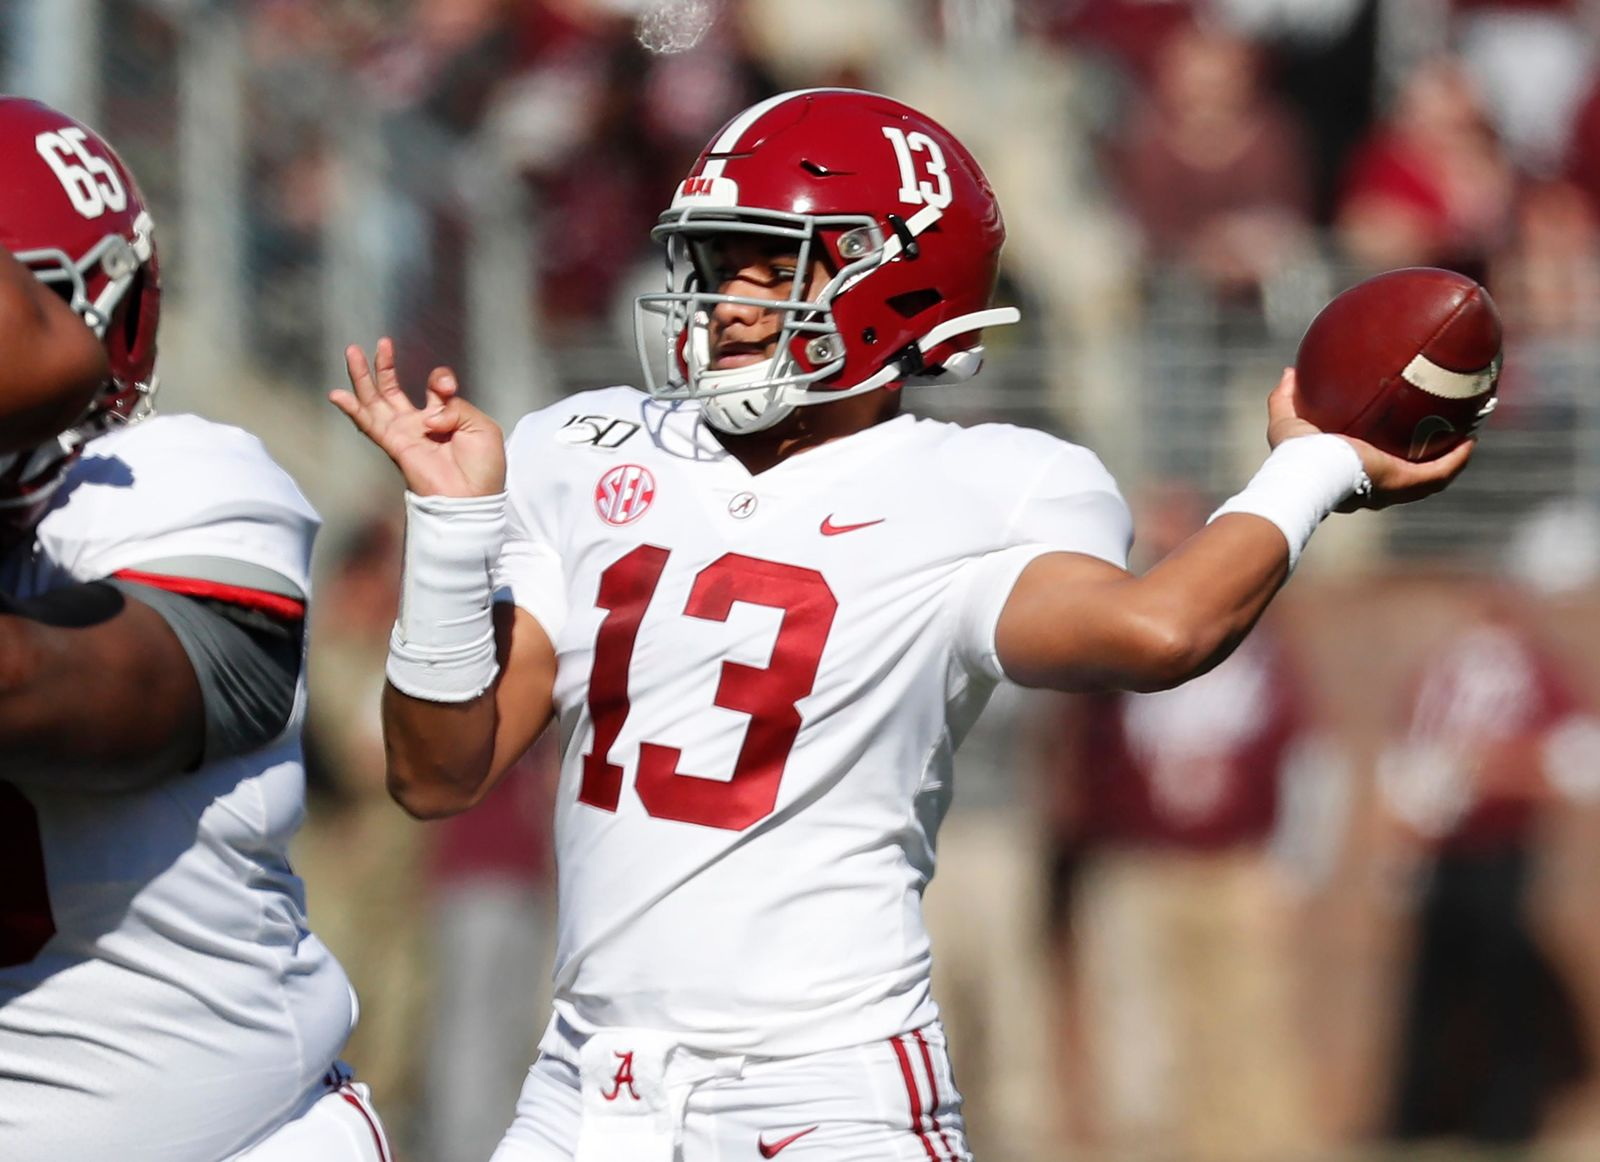 Alabama quarterback Tua Tagovailoa (13) throws a pass against Mississippi State during the first half of an NCAA college football game in Starkville, Miss., Saturday, Nov. 16, 2019. (AP Photo/Rogelio V. Solis)